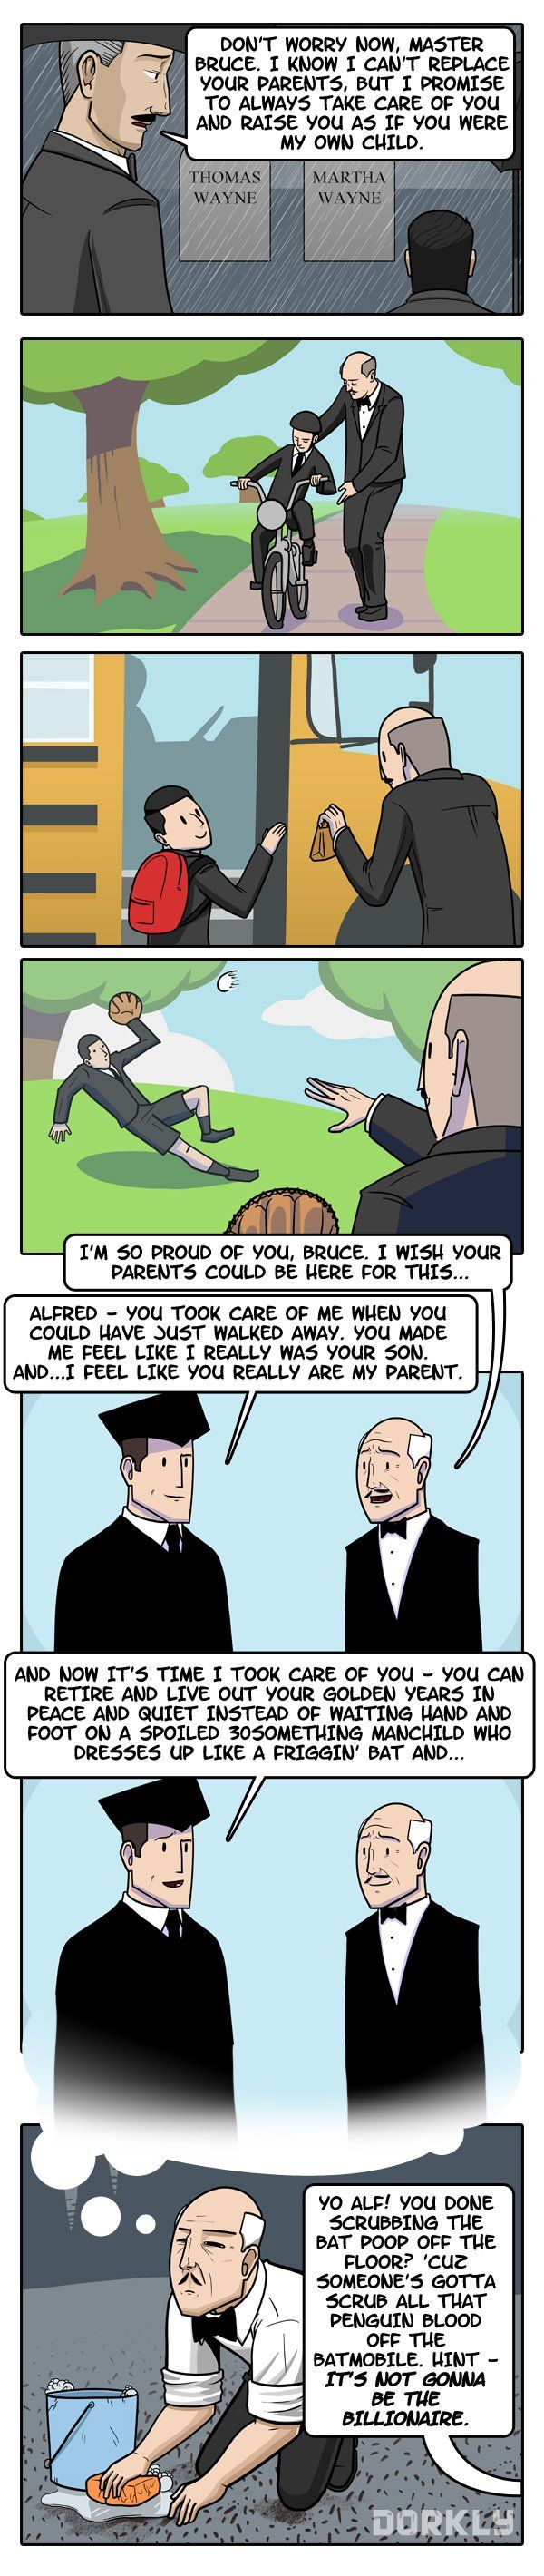 Dorkly Comic: The Life of Alfred. Aww man! I thought this was gonna all be sweet and stuff, but NOPE!!!